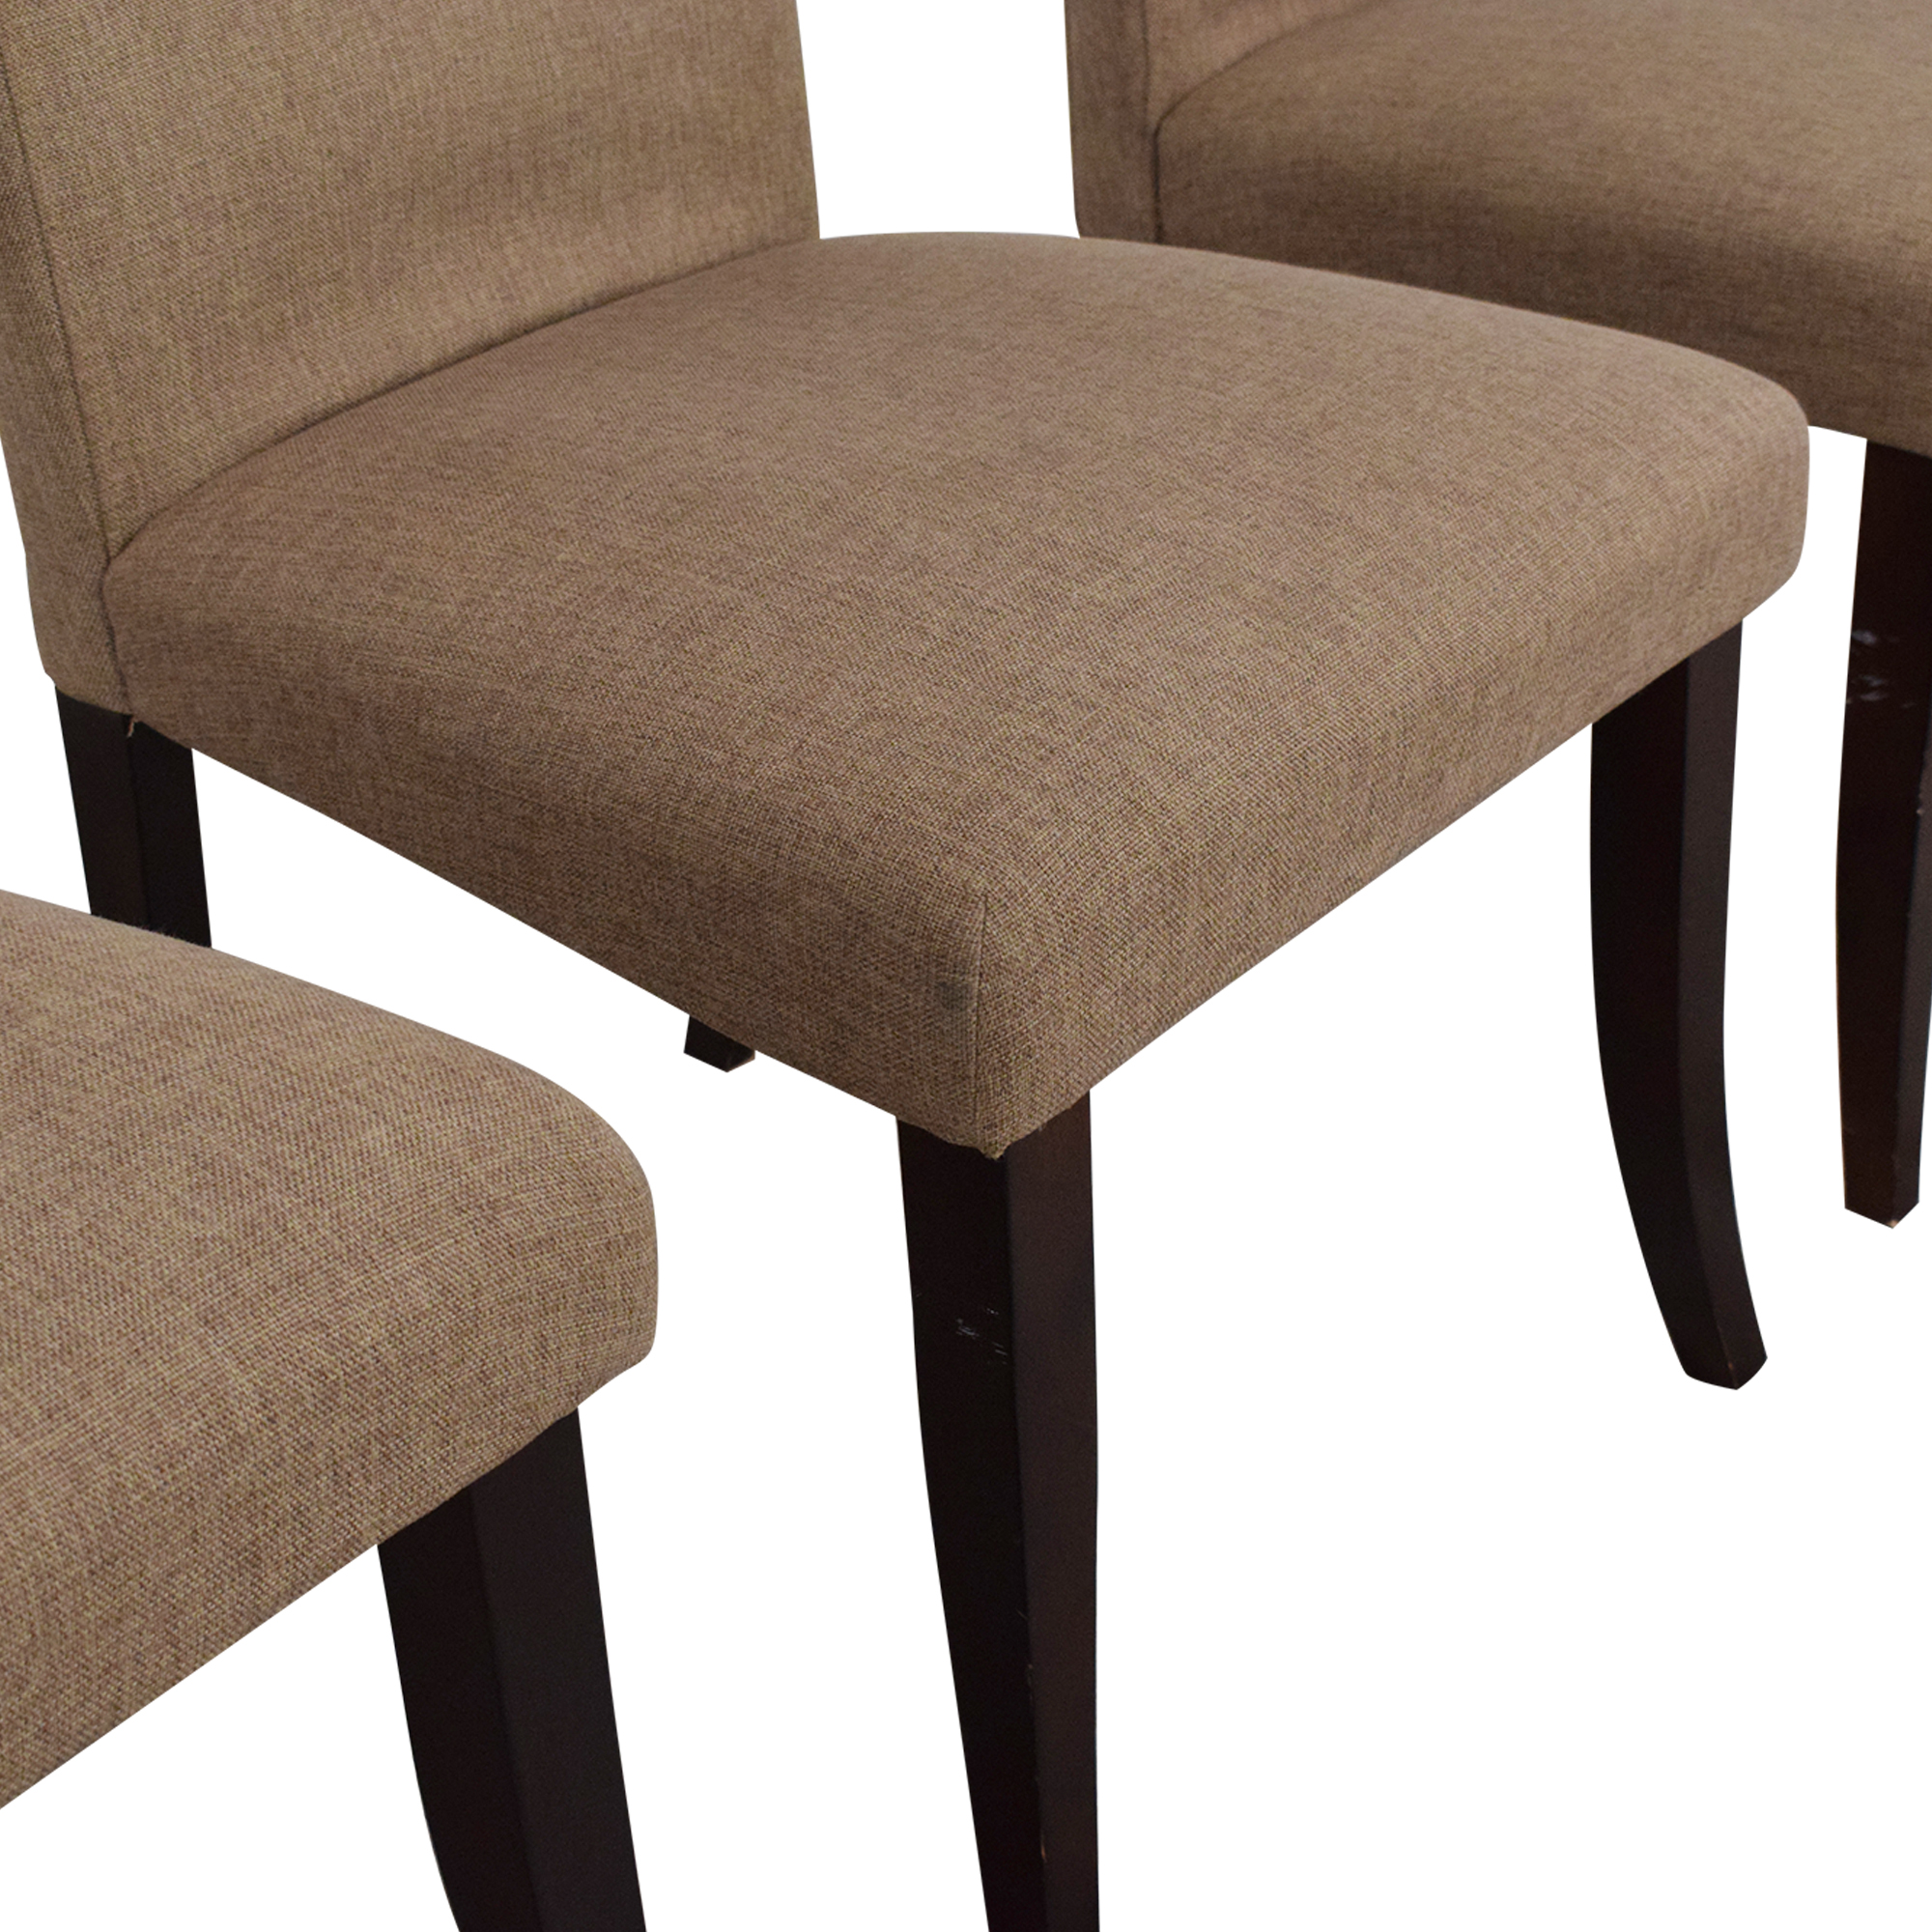 shop Macy's Macy's Dining Chairs online